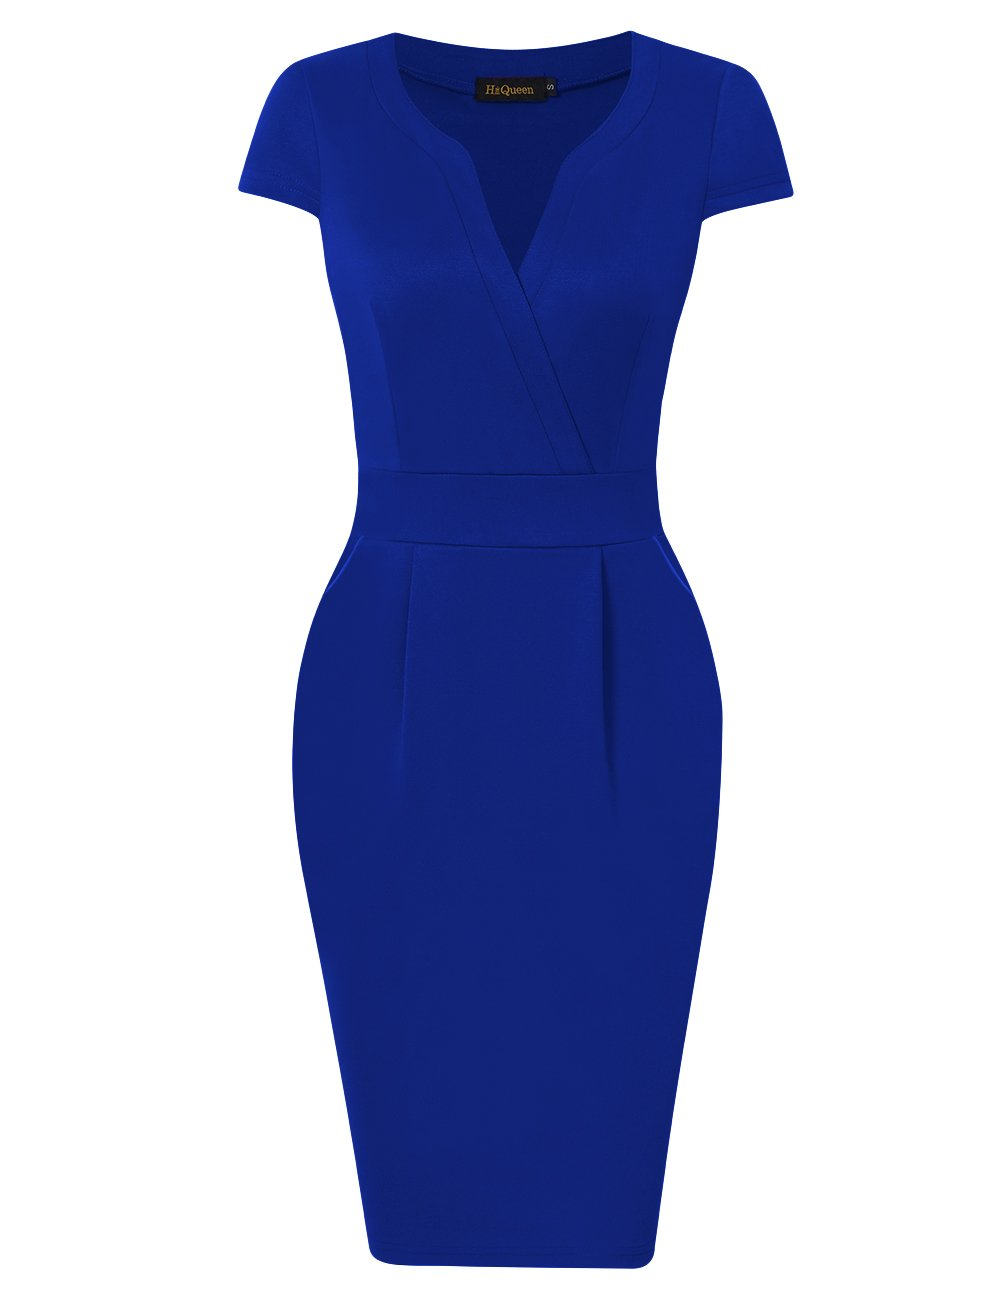 Available at Amazon: HiQueen Women Vintage Office Work Business Party Bodycon Pencil Dress